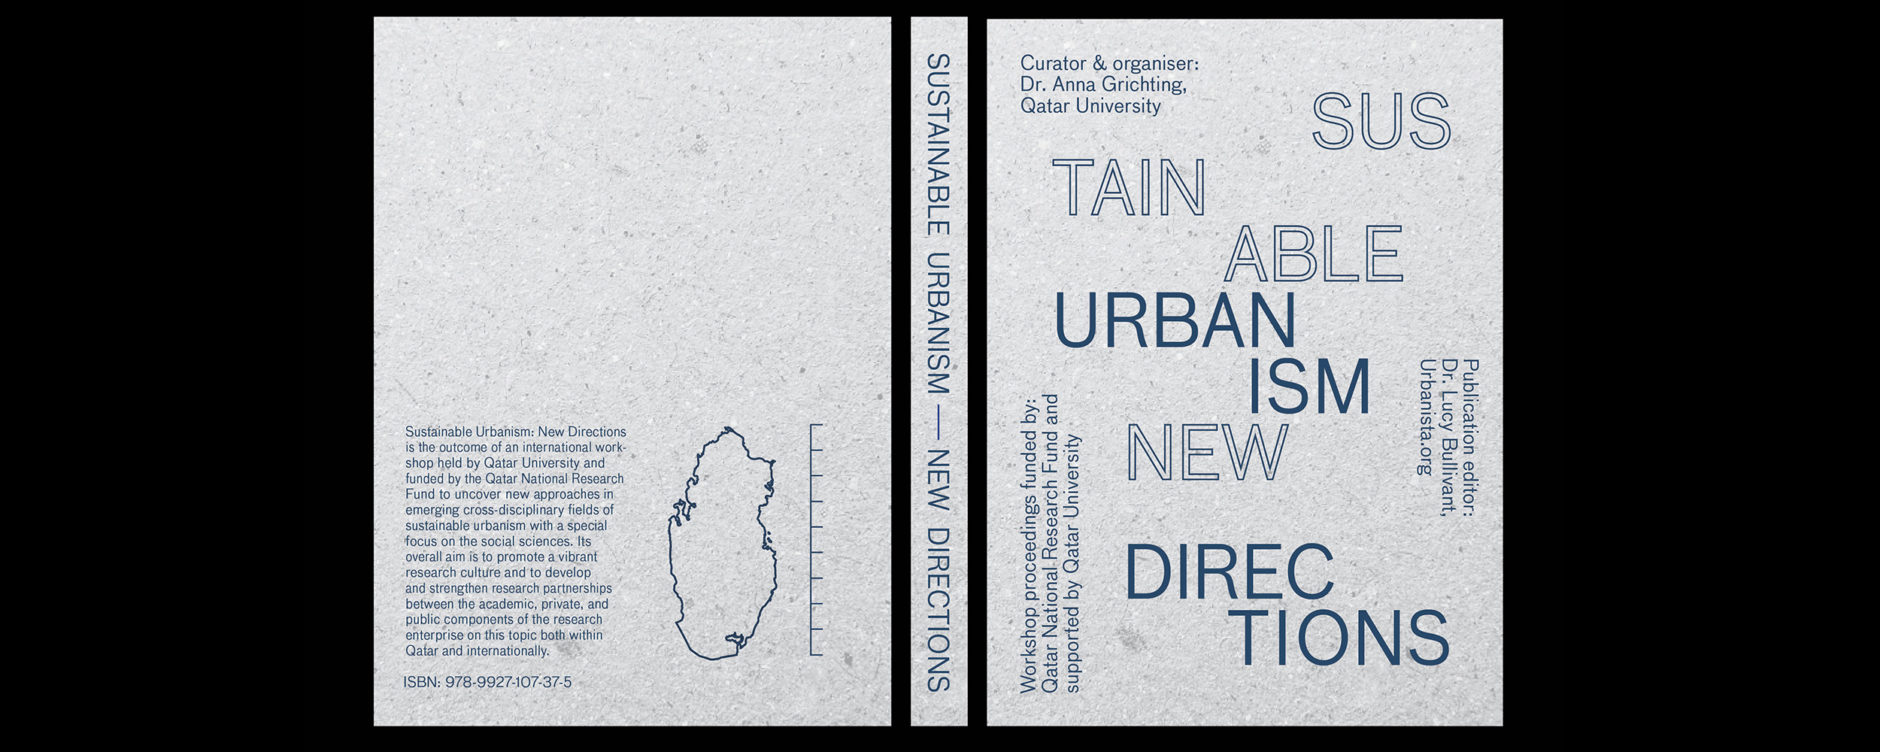 Sustainable Urbanism - New Directions, limited edition printed publication, proceedings of the international workshop of the same name funded by the Qatar National Research Fund and supported by Qatar University. Curator & organiser: Dr. Anna Grichting. Publication editor: Dr. Lucy Bullivant, Urbanista.org. Book designed by Kirstin Helgadóttir, 2018, Qatar University. Image © Kirstin Helgadóttir.